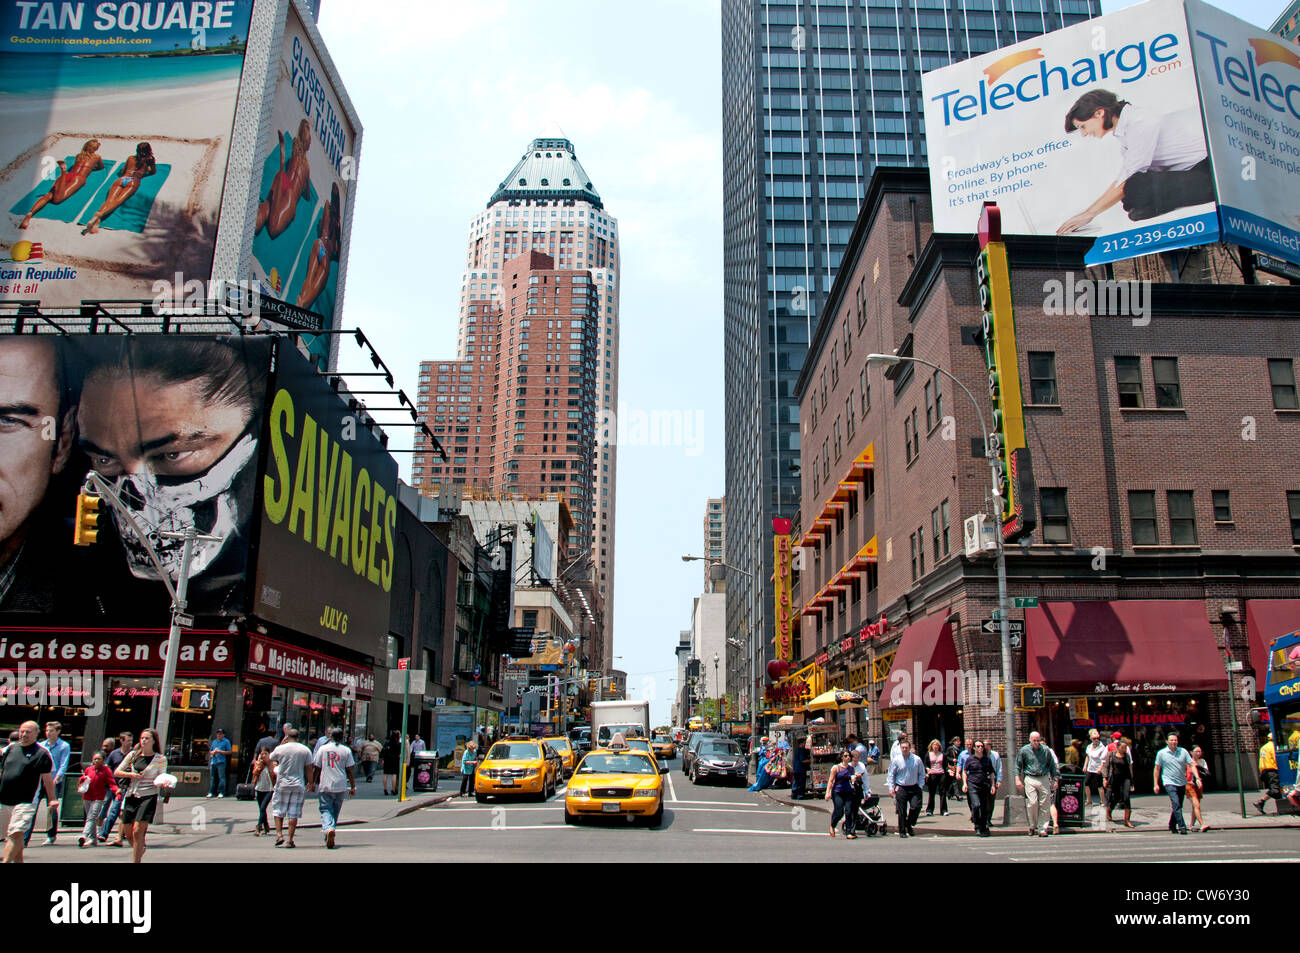 New York City  7 th Avenue near Times Square Savages - Stock Image